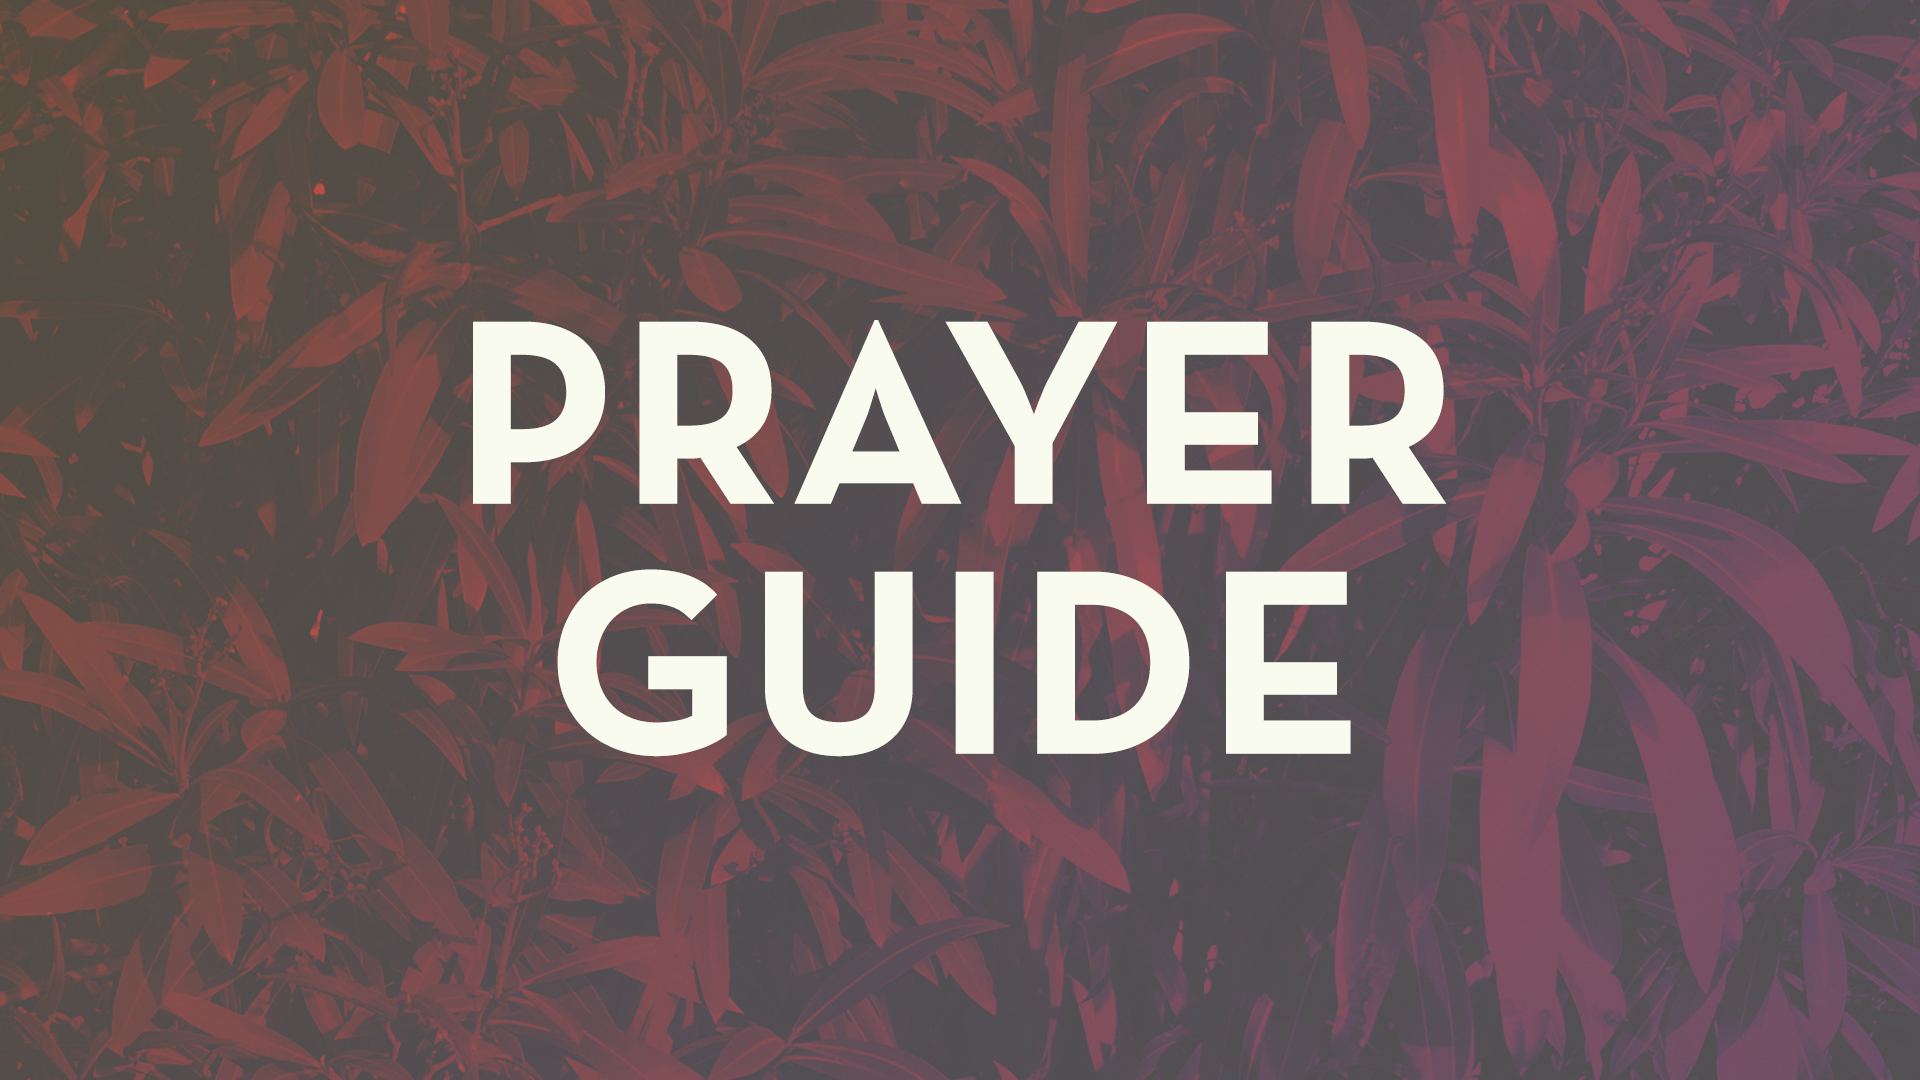 Prayer Guide Slide.jpg